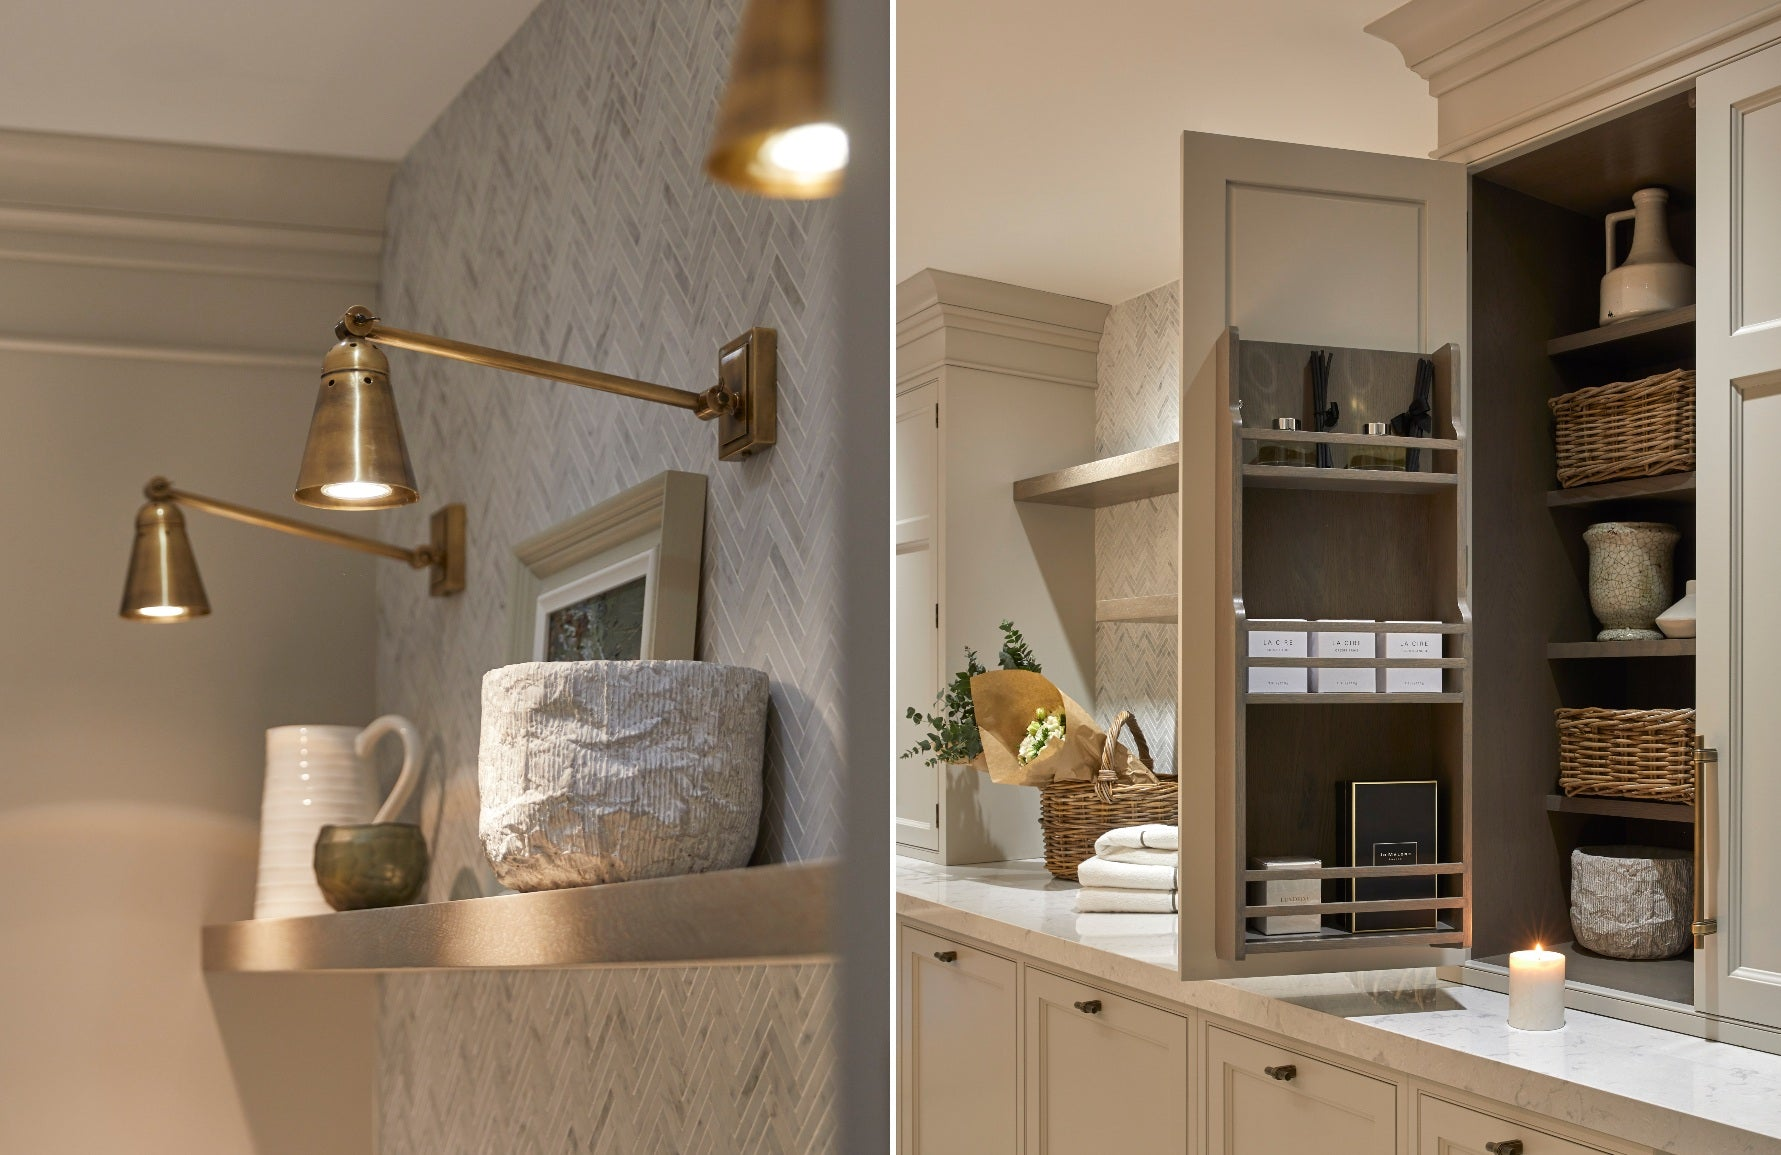 Luxury Utility Room Ideas and Designs For Dreamy Chore Time with Sophie Paterson | Utility Room Decor | Read more in the LuxDeco Style Guide